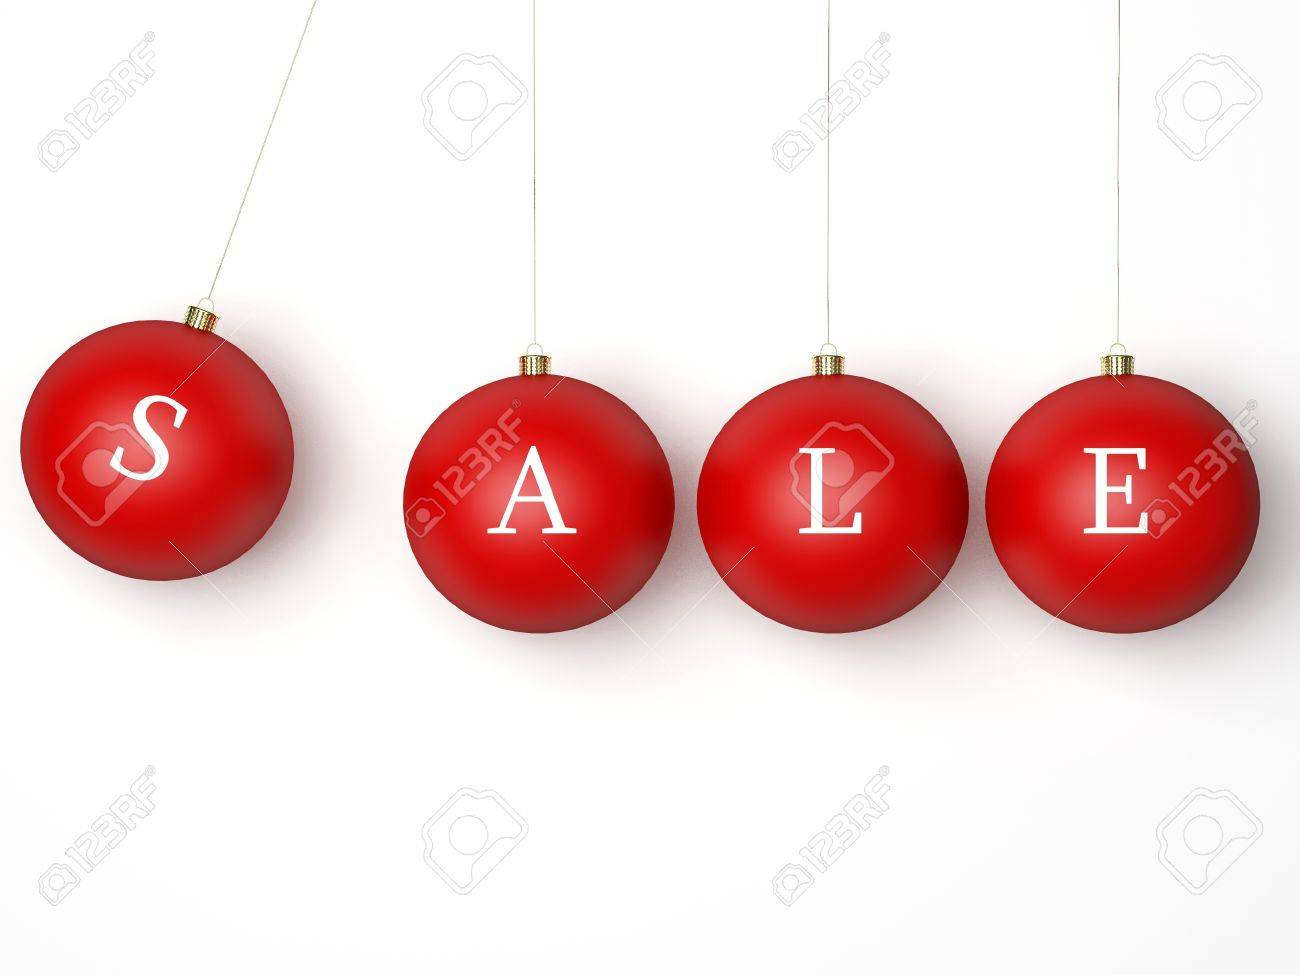 Sale Christmas Red Balls Modern Xmas Retail Decoration Bauble This Is A Detailed 3d